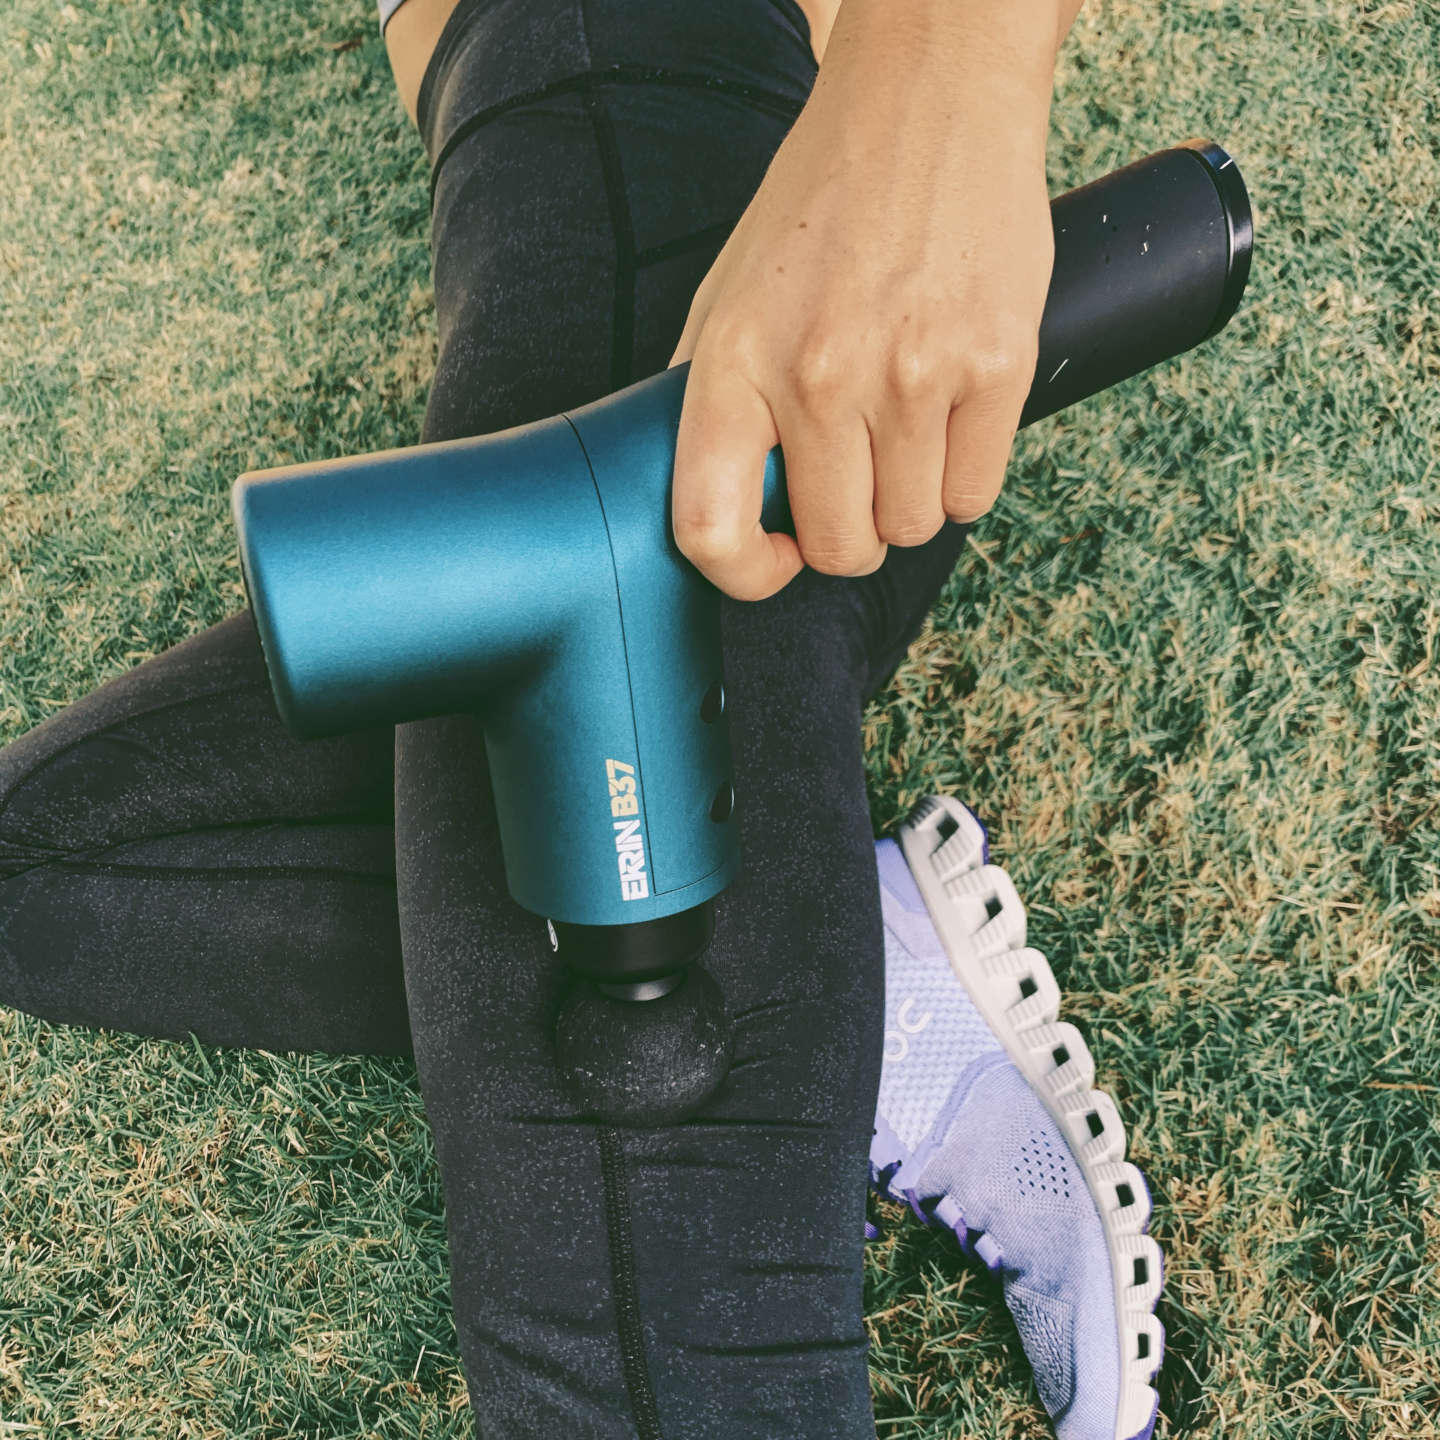 Athletic woman massaging her muscles with a massage gun outside on grass